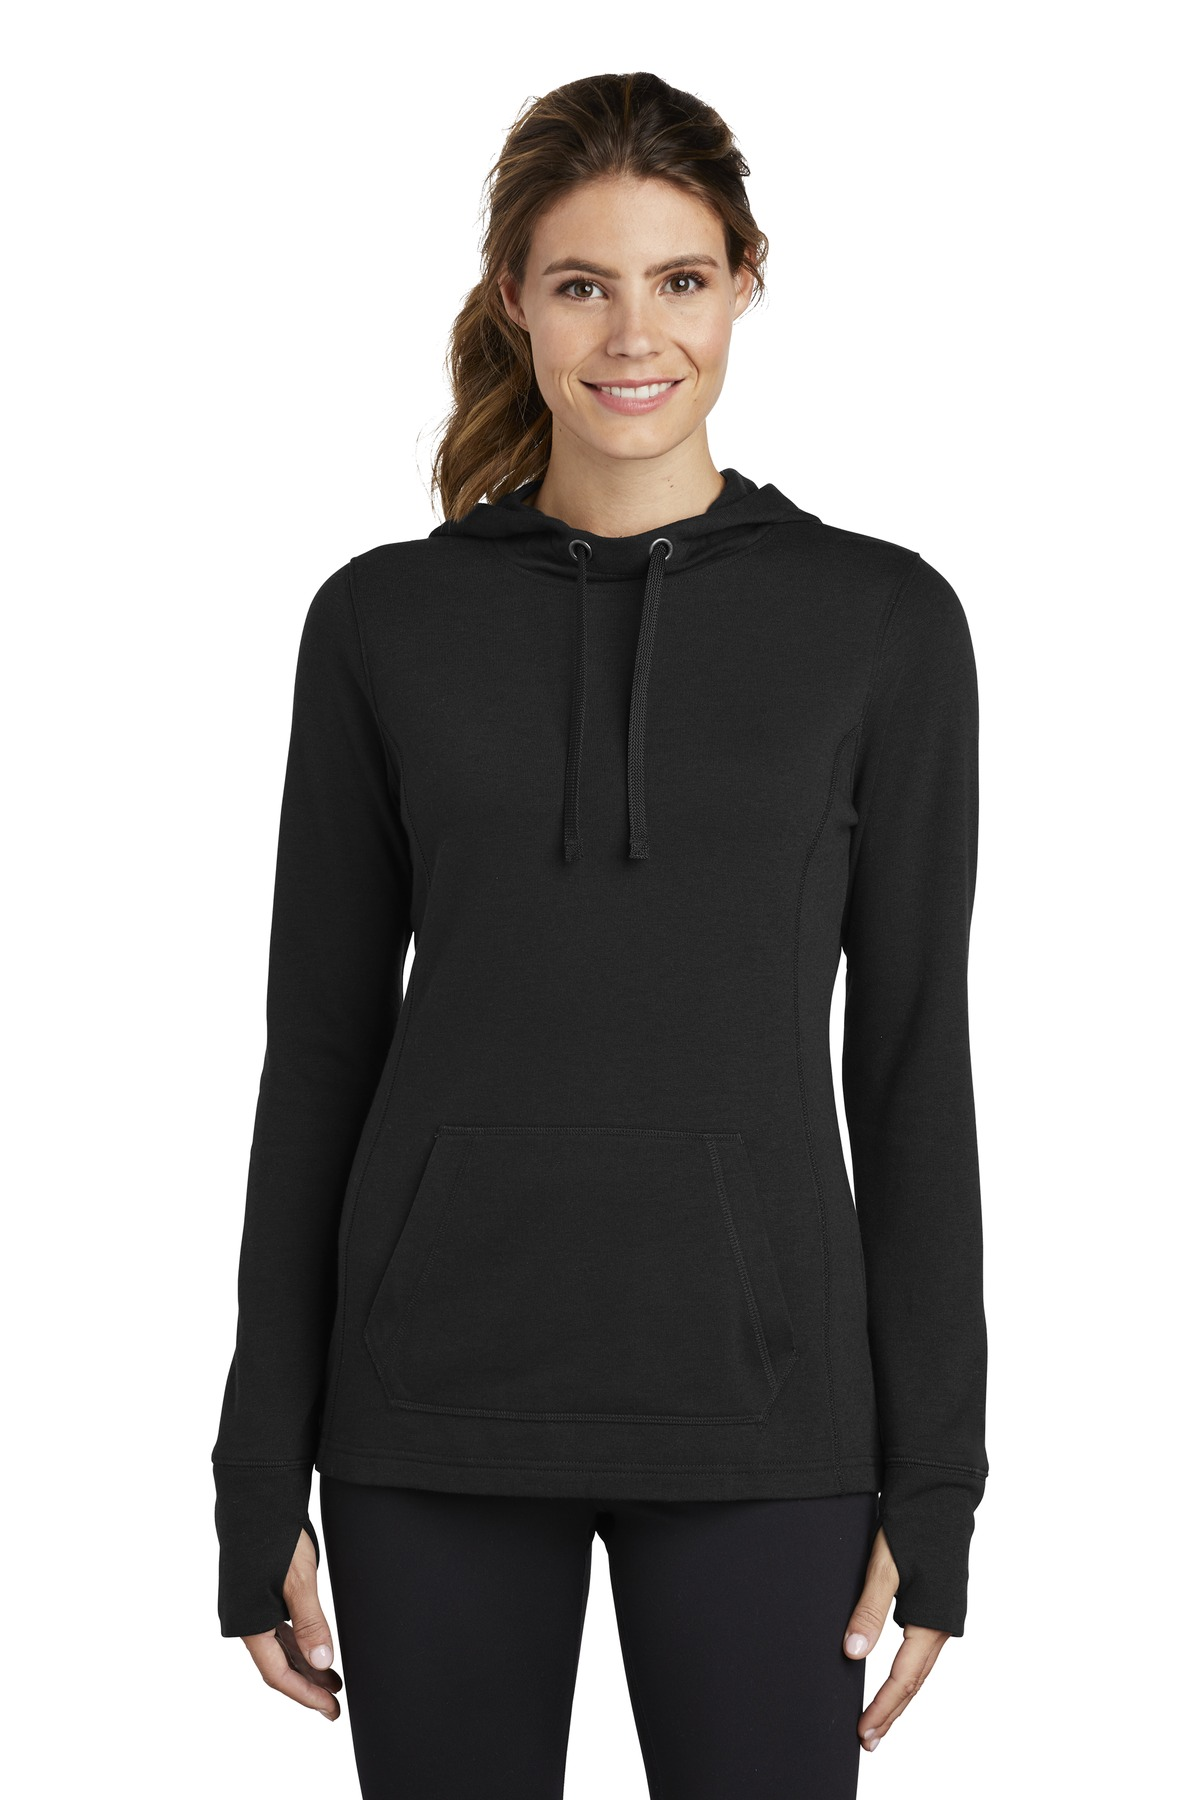 Sport-Tek  ®  Ladies PosiCharge  ®  Tri-Blend Wicking Fleece Hooded Pullover. LST296 - Black Triad Solid